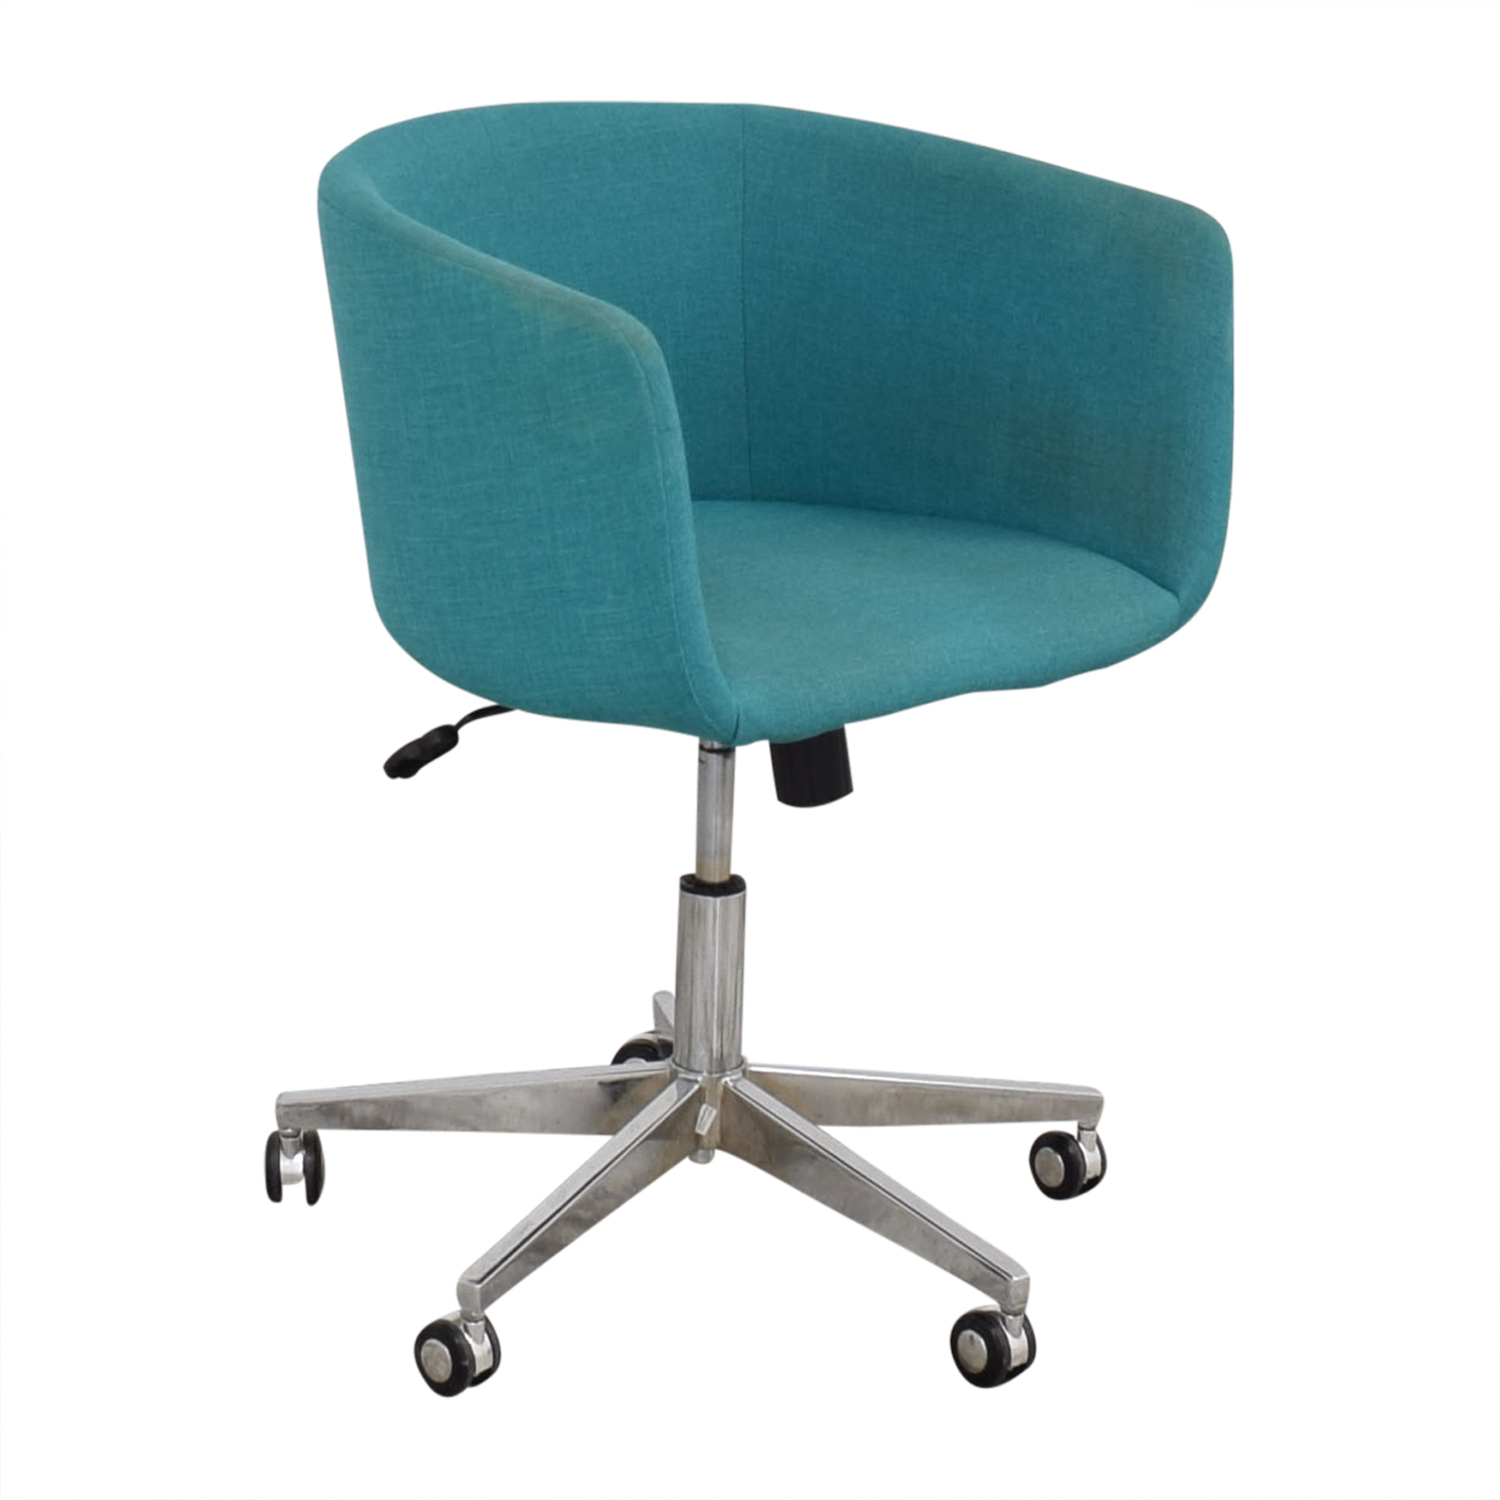 CB2 Coup Office Chair sale